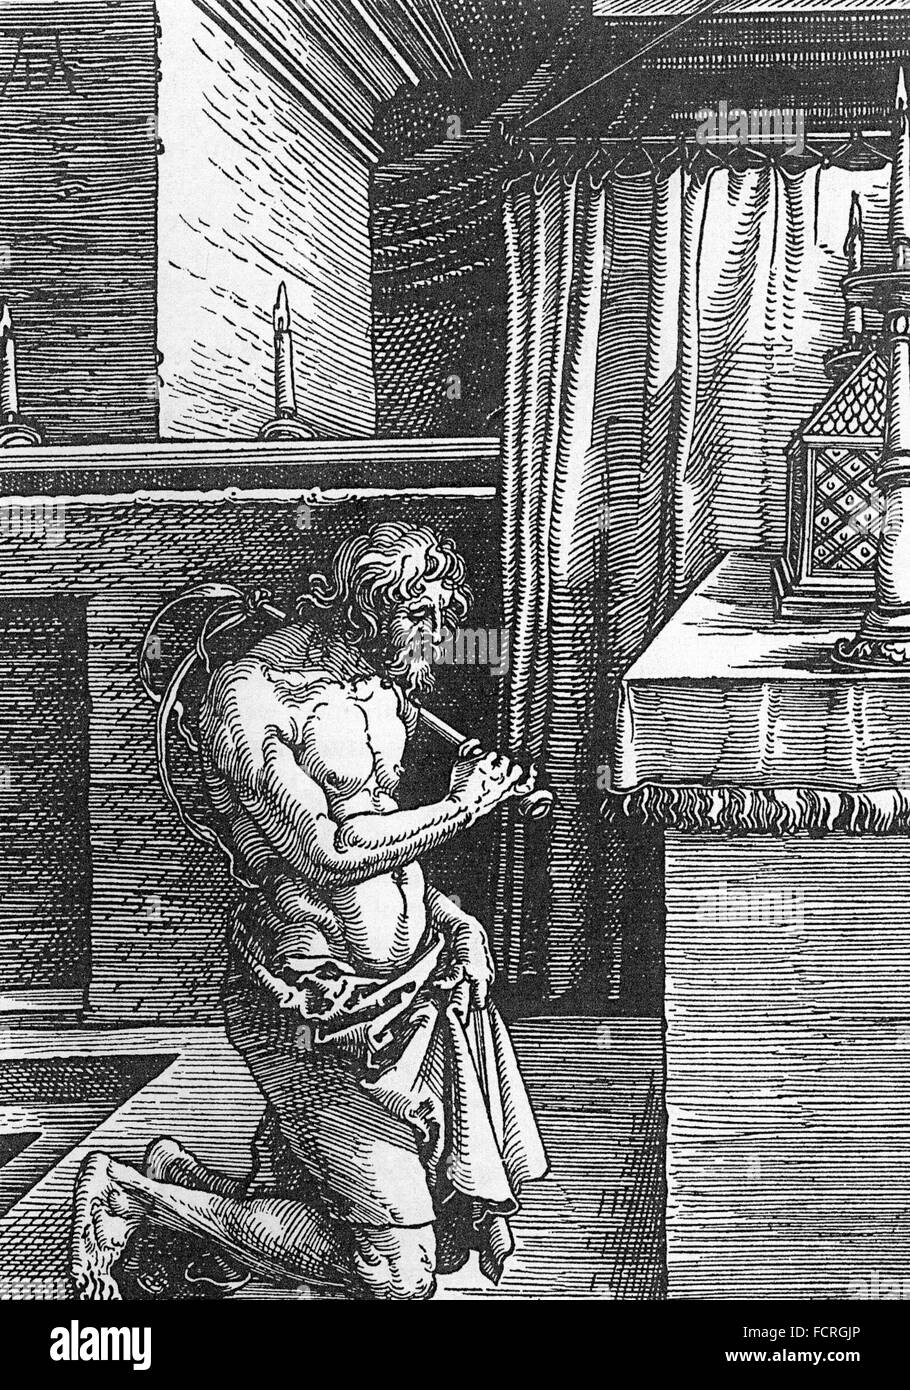 ALBRECHT DURER (1471-1528) German artist. Wood engraving of a flagellant  made in 1510